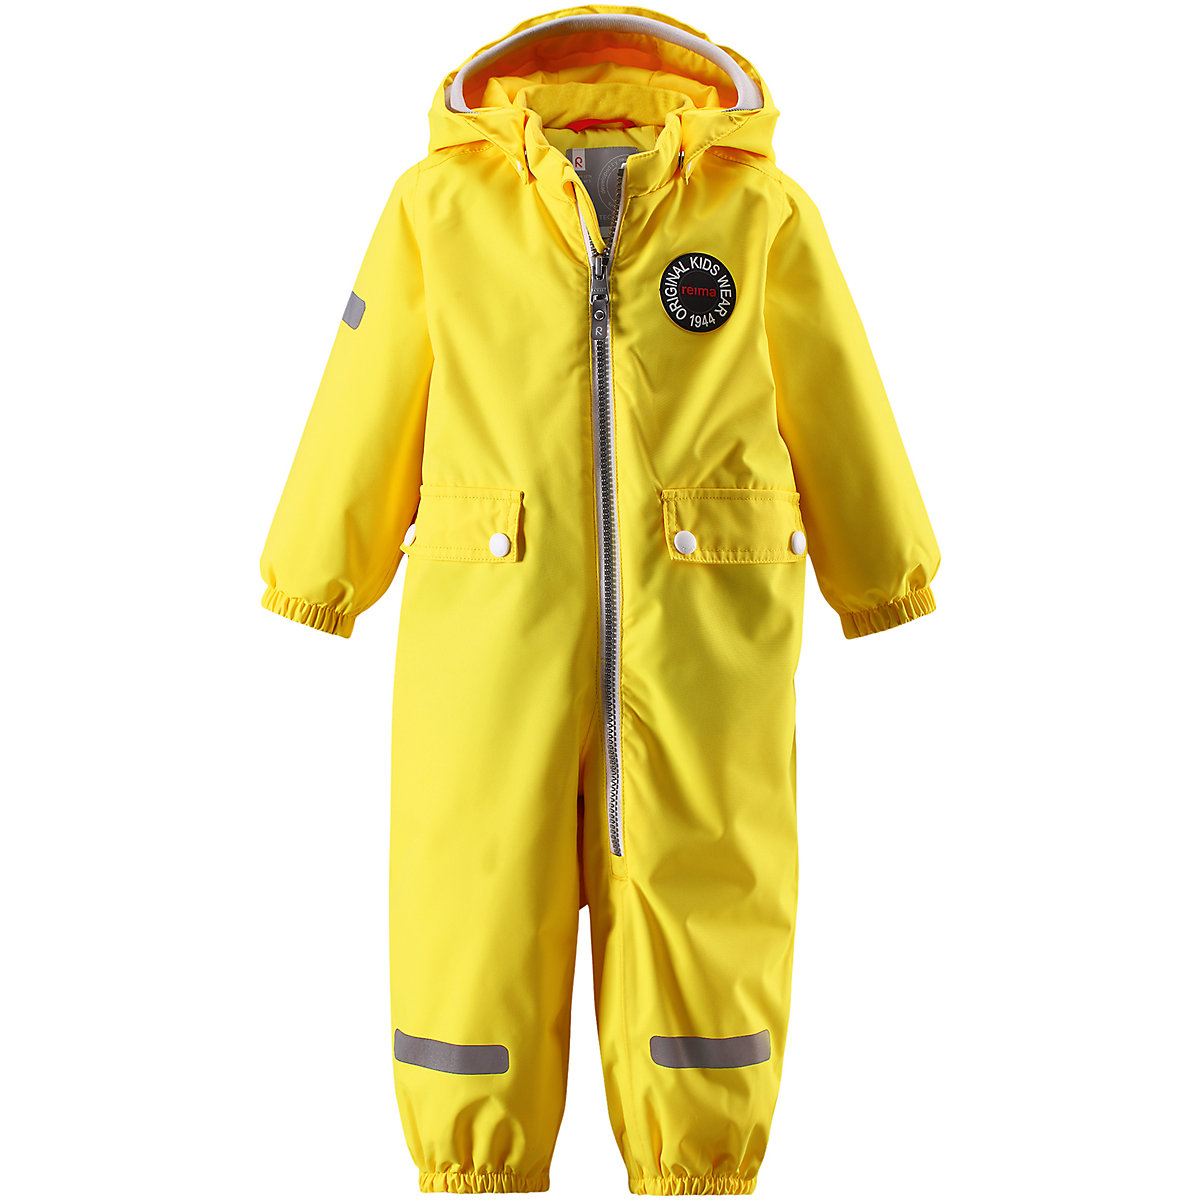 REIMA Overalls  7636431 for boys and girls polyester winter reima overalls 7628255 for boys and girls polyester winter